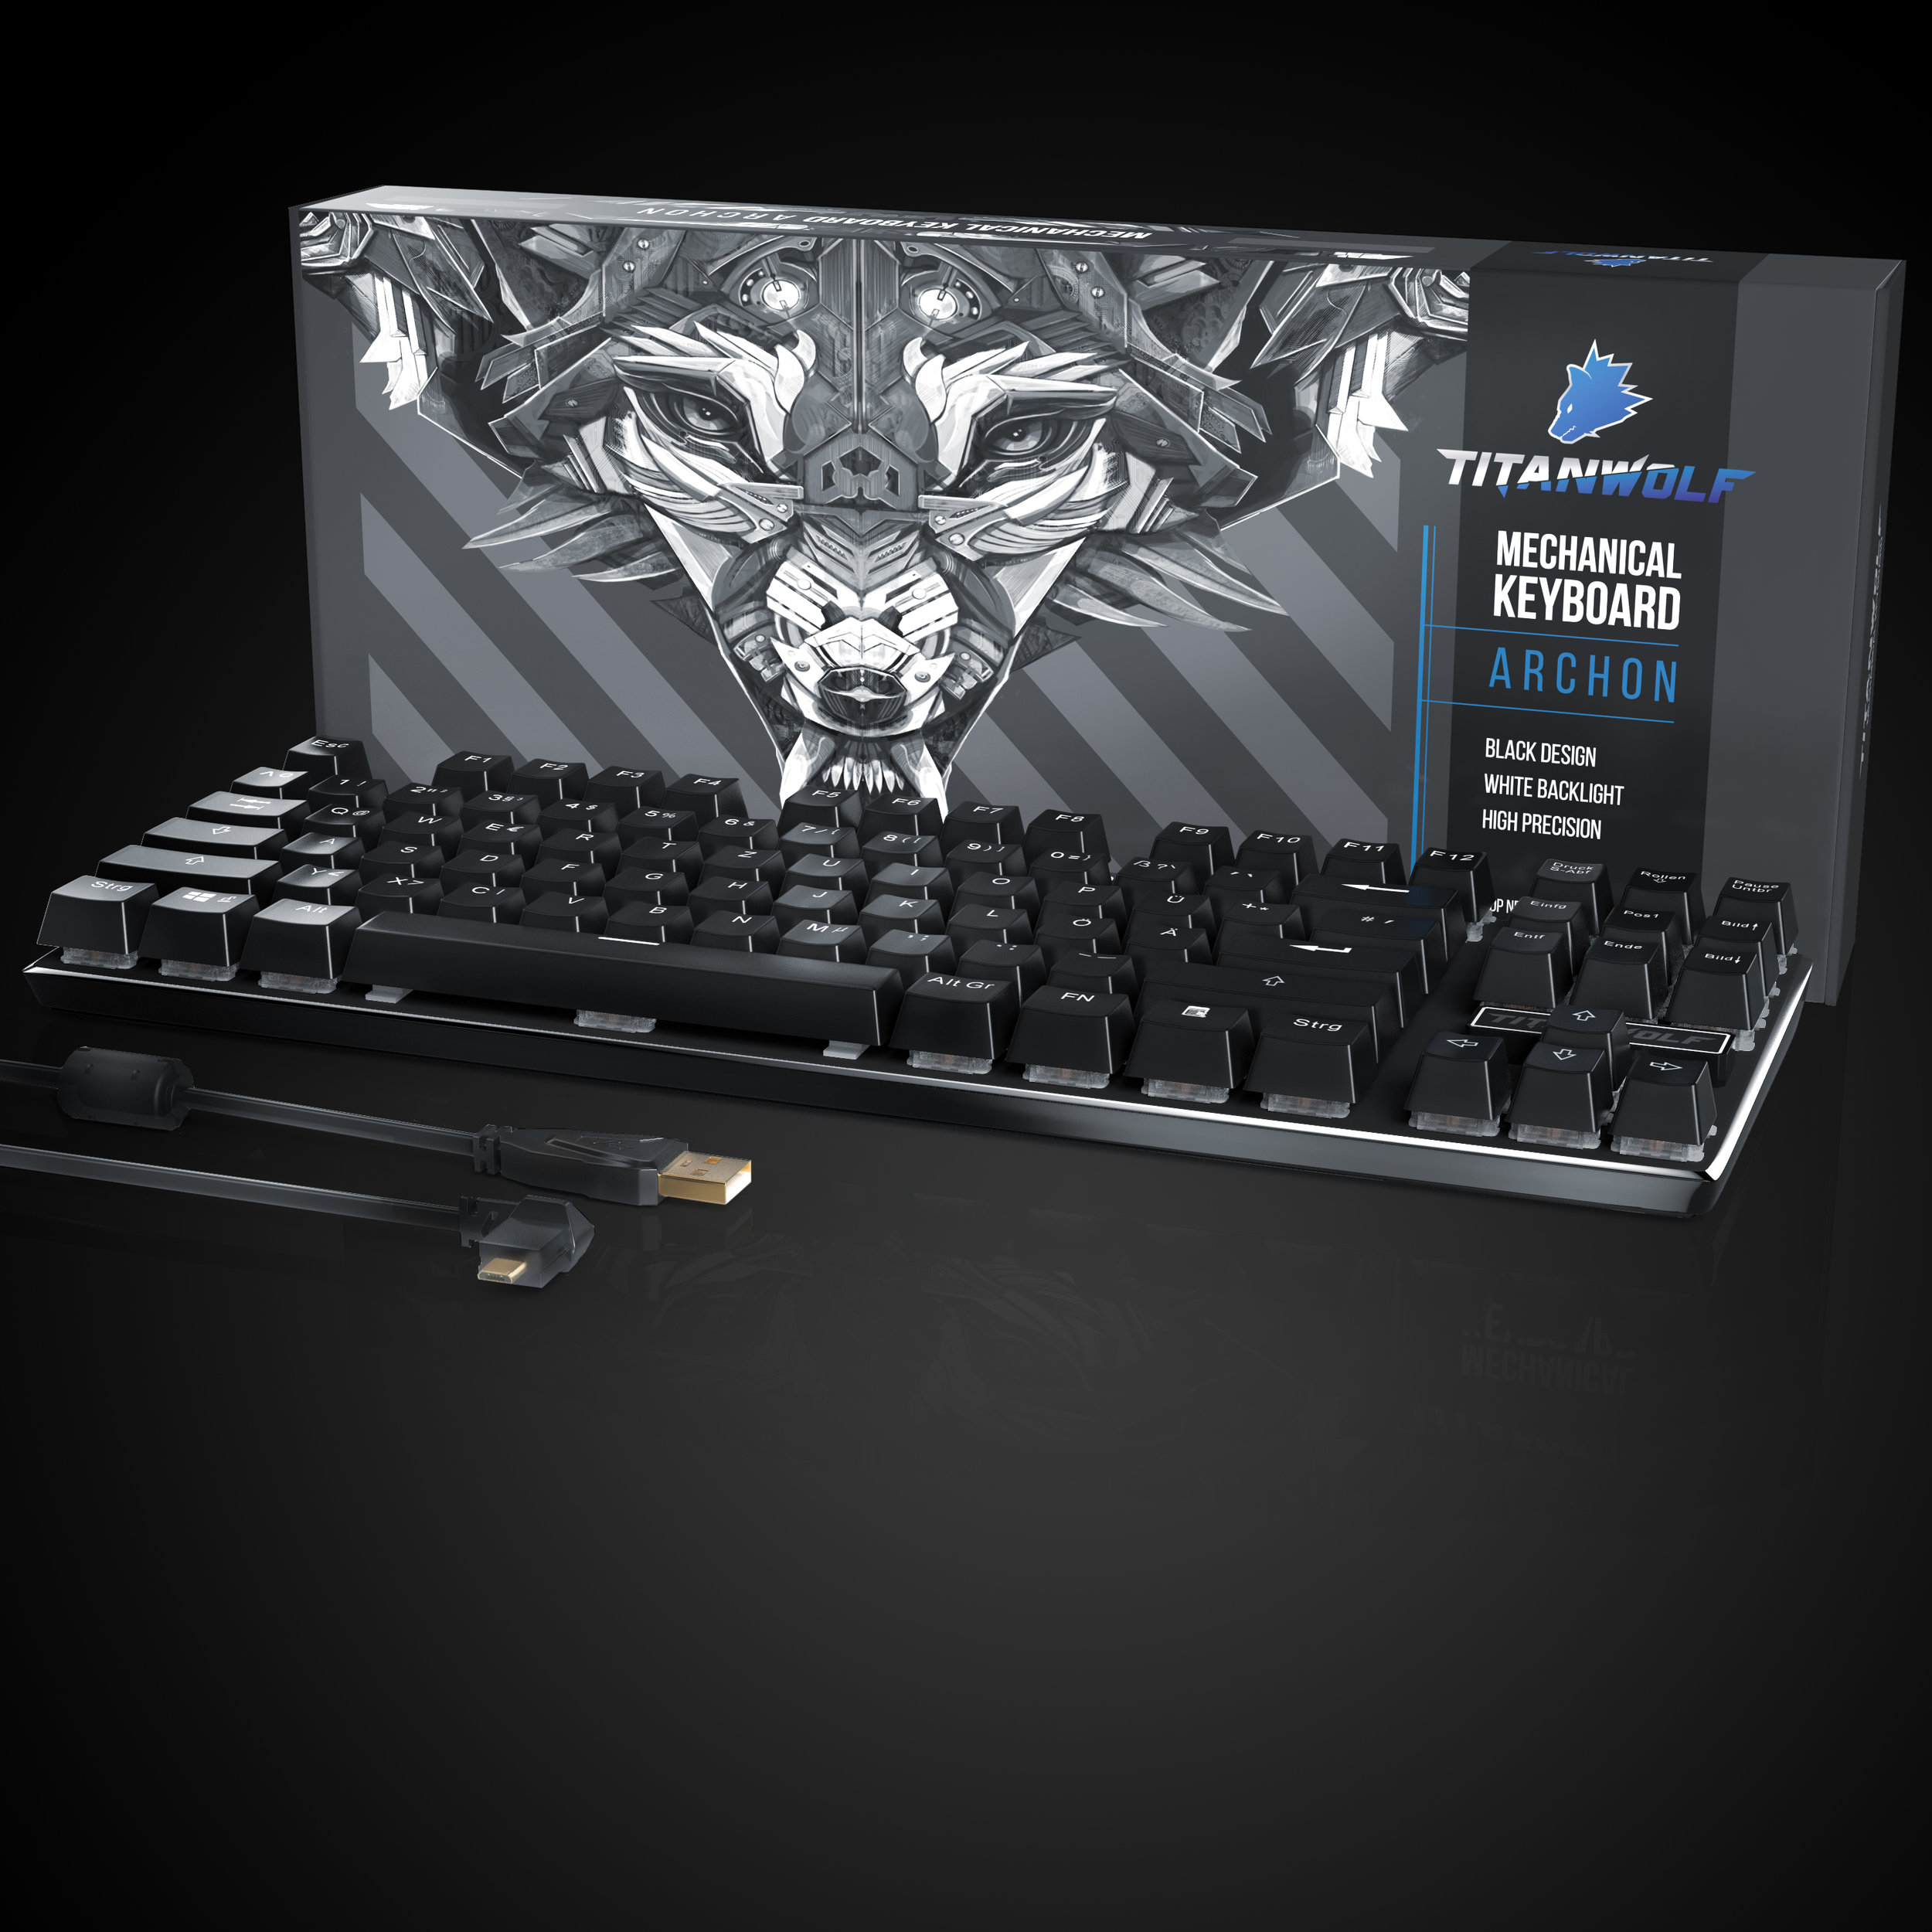 302521 mechanical keyboard  archon titanwolf _box.jpg